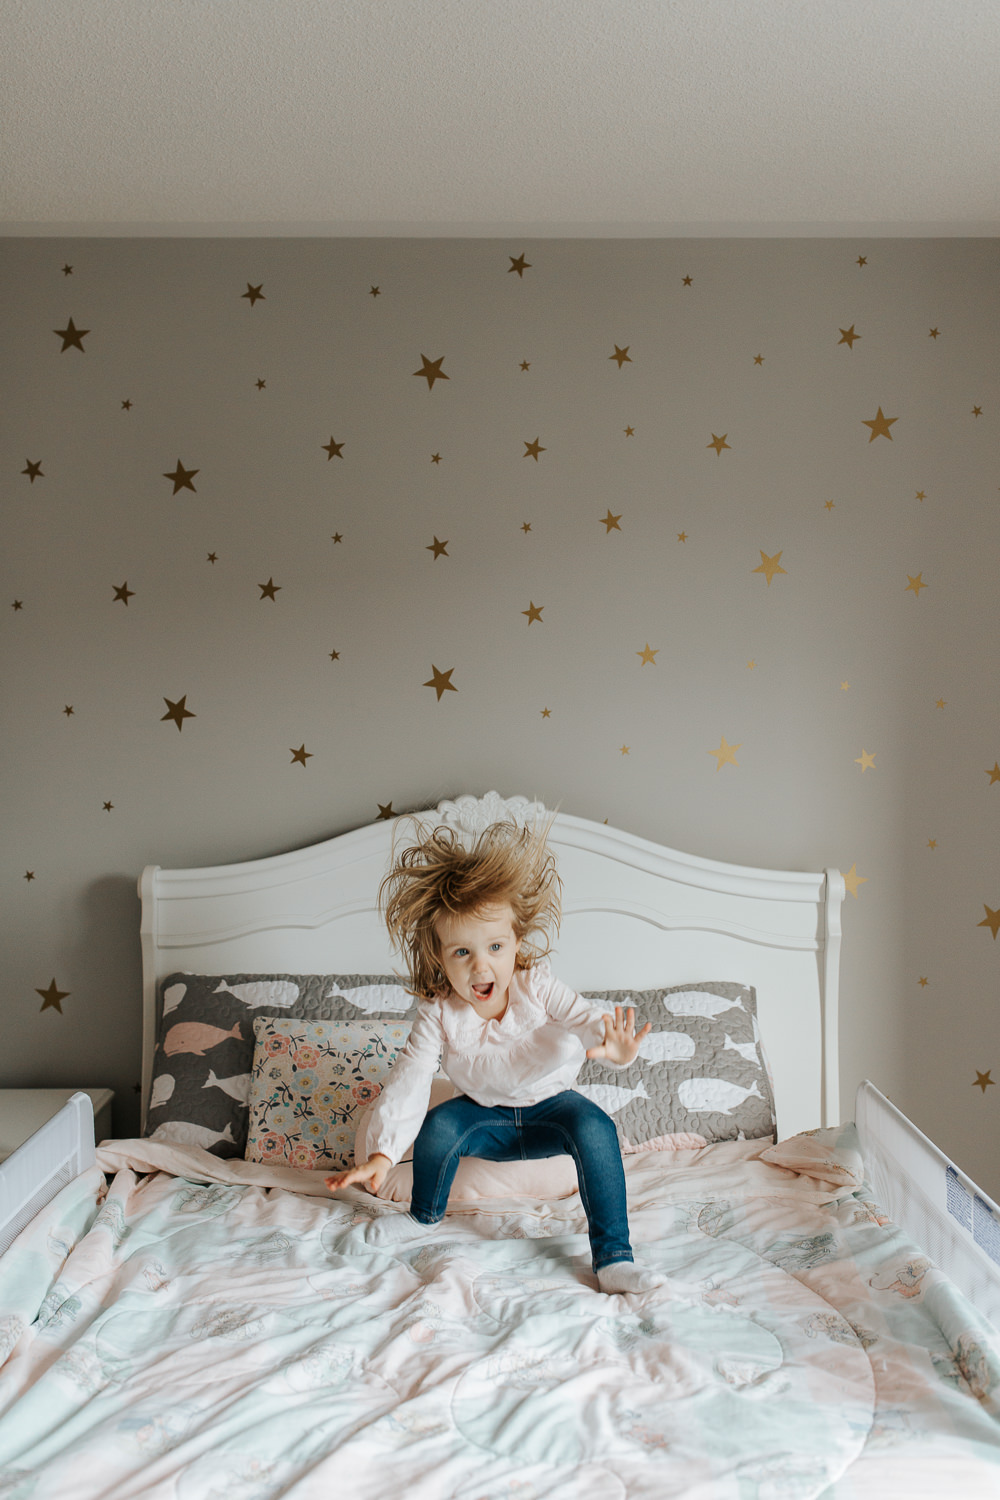 Blonde 2 year old toddler girl jumping on bed, hair flying in the air, big smile on face -York Region In-Home Photography